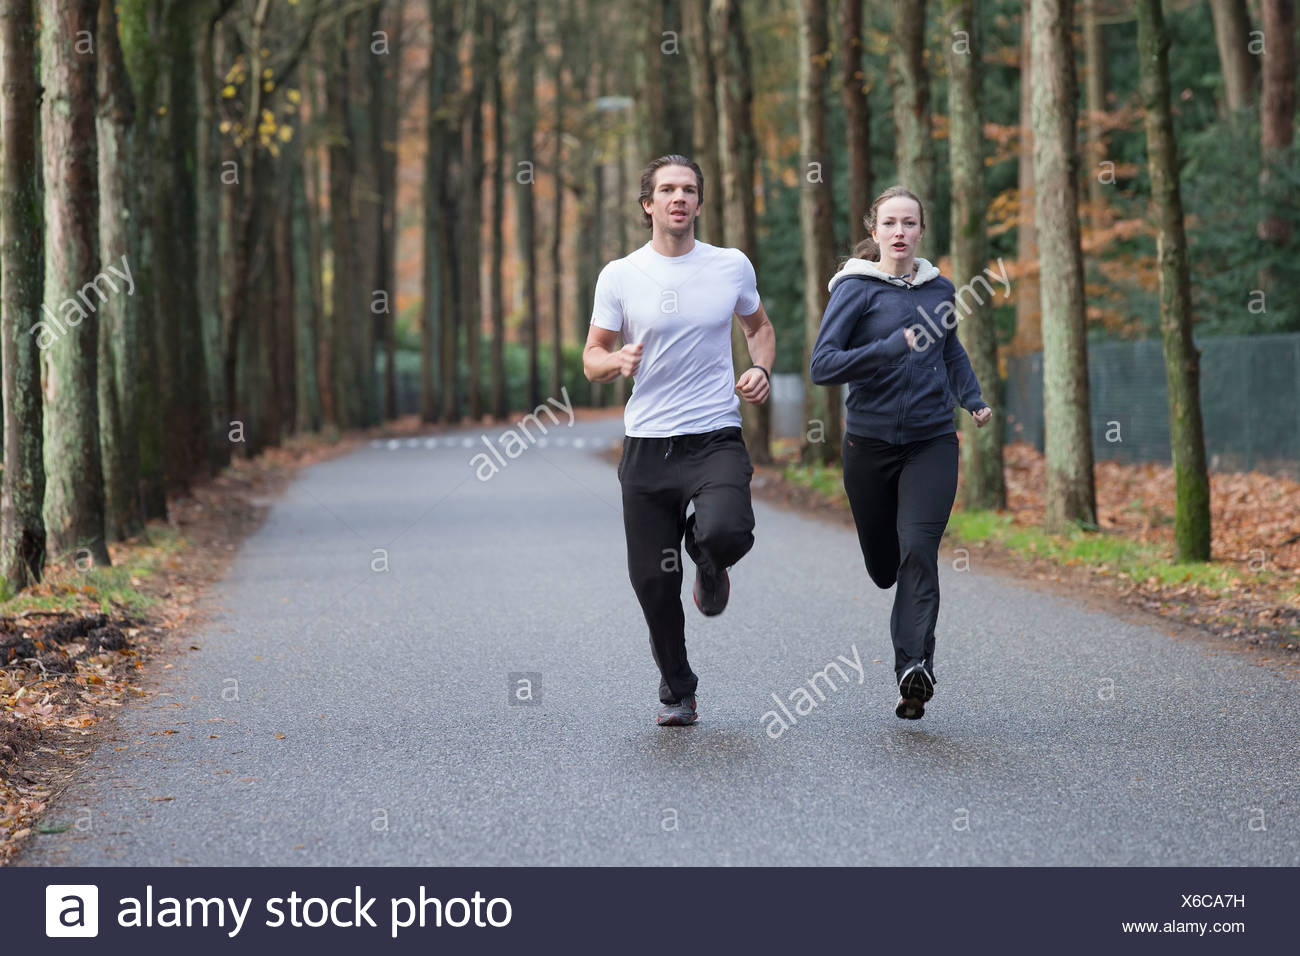 Couple running through forest Photo Stock